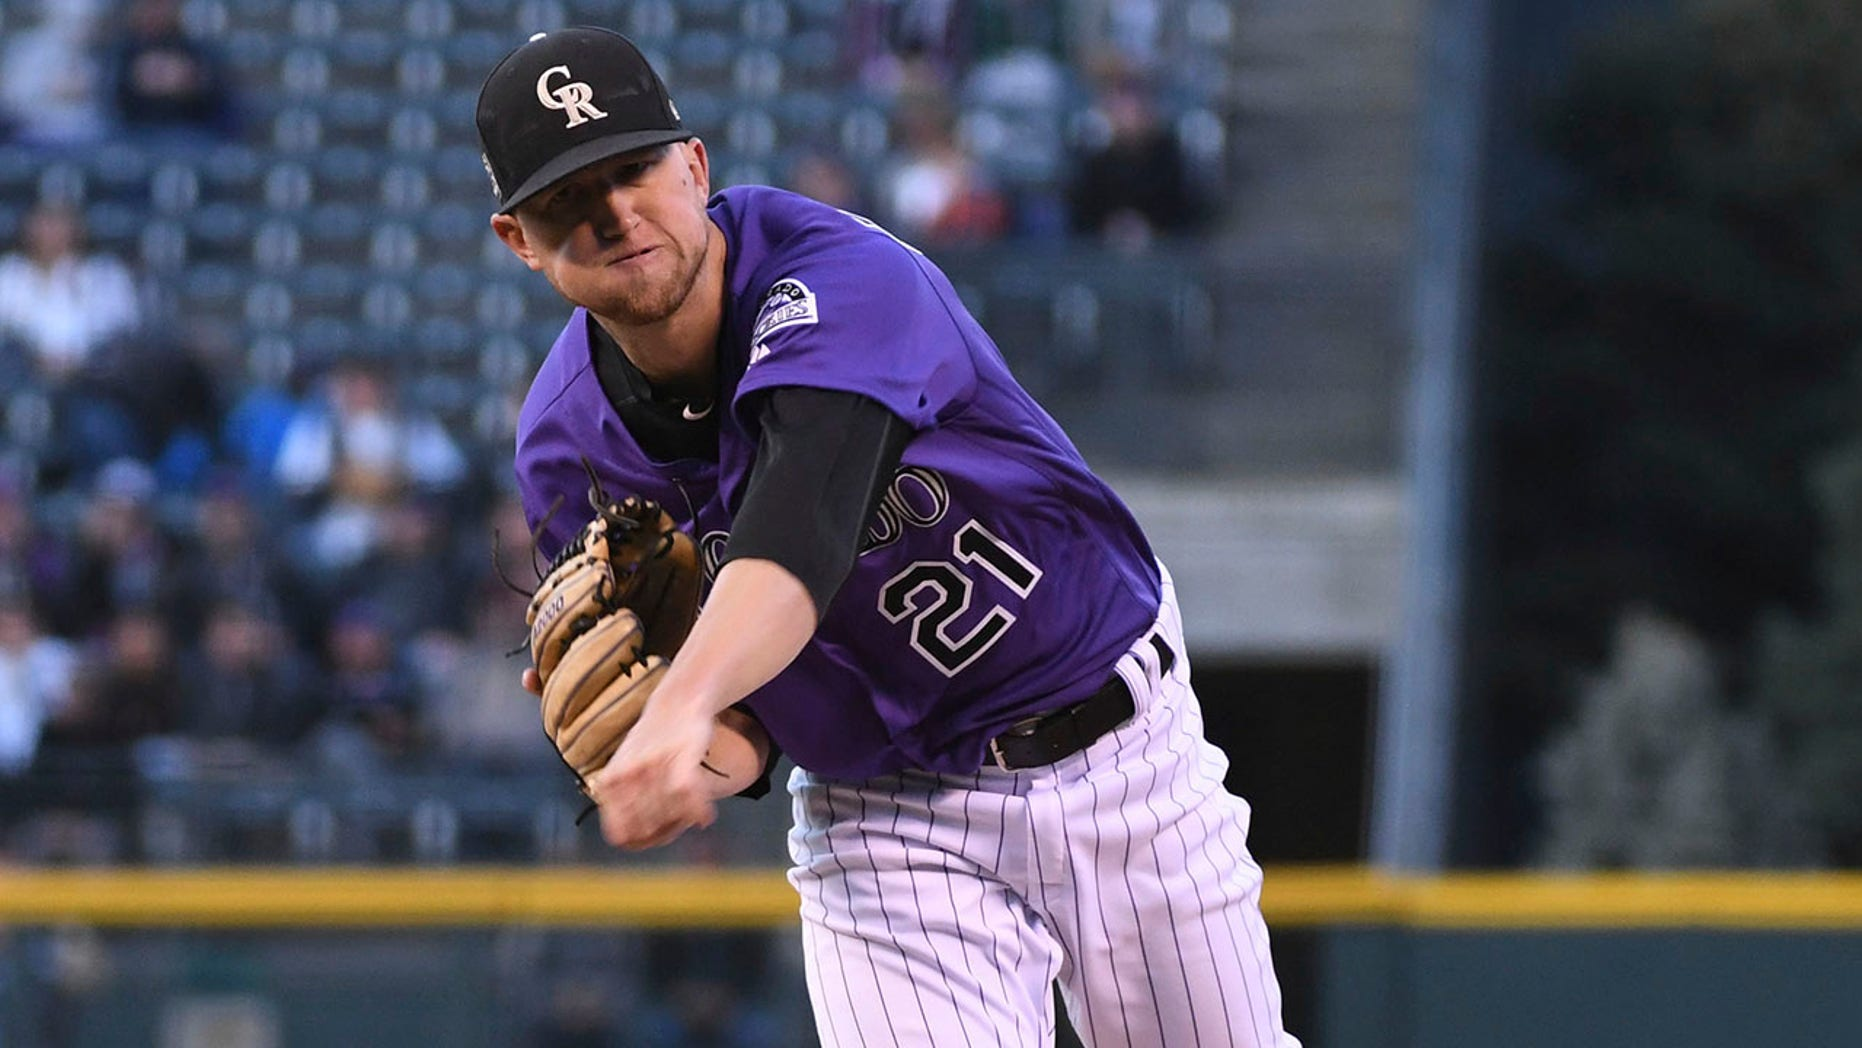 Colorado Rockies starting pitcher Kyle Freeland throws to a Washington Nationals batter during the first inning of a baseball game Friday, Sept. 28, 2018, in Denver. (AP Photo/John Leyba)